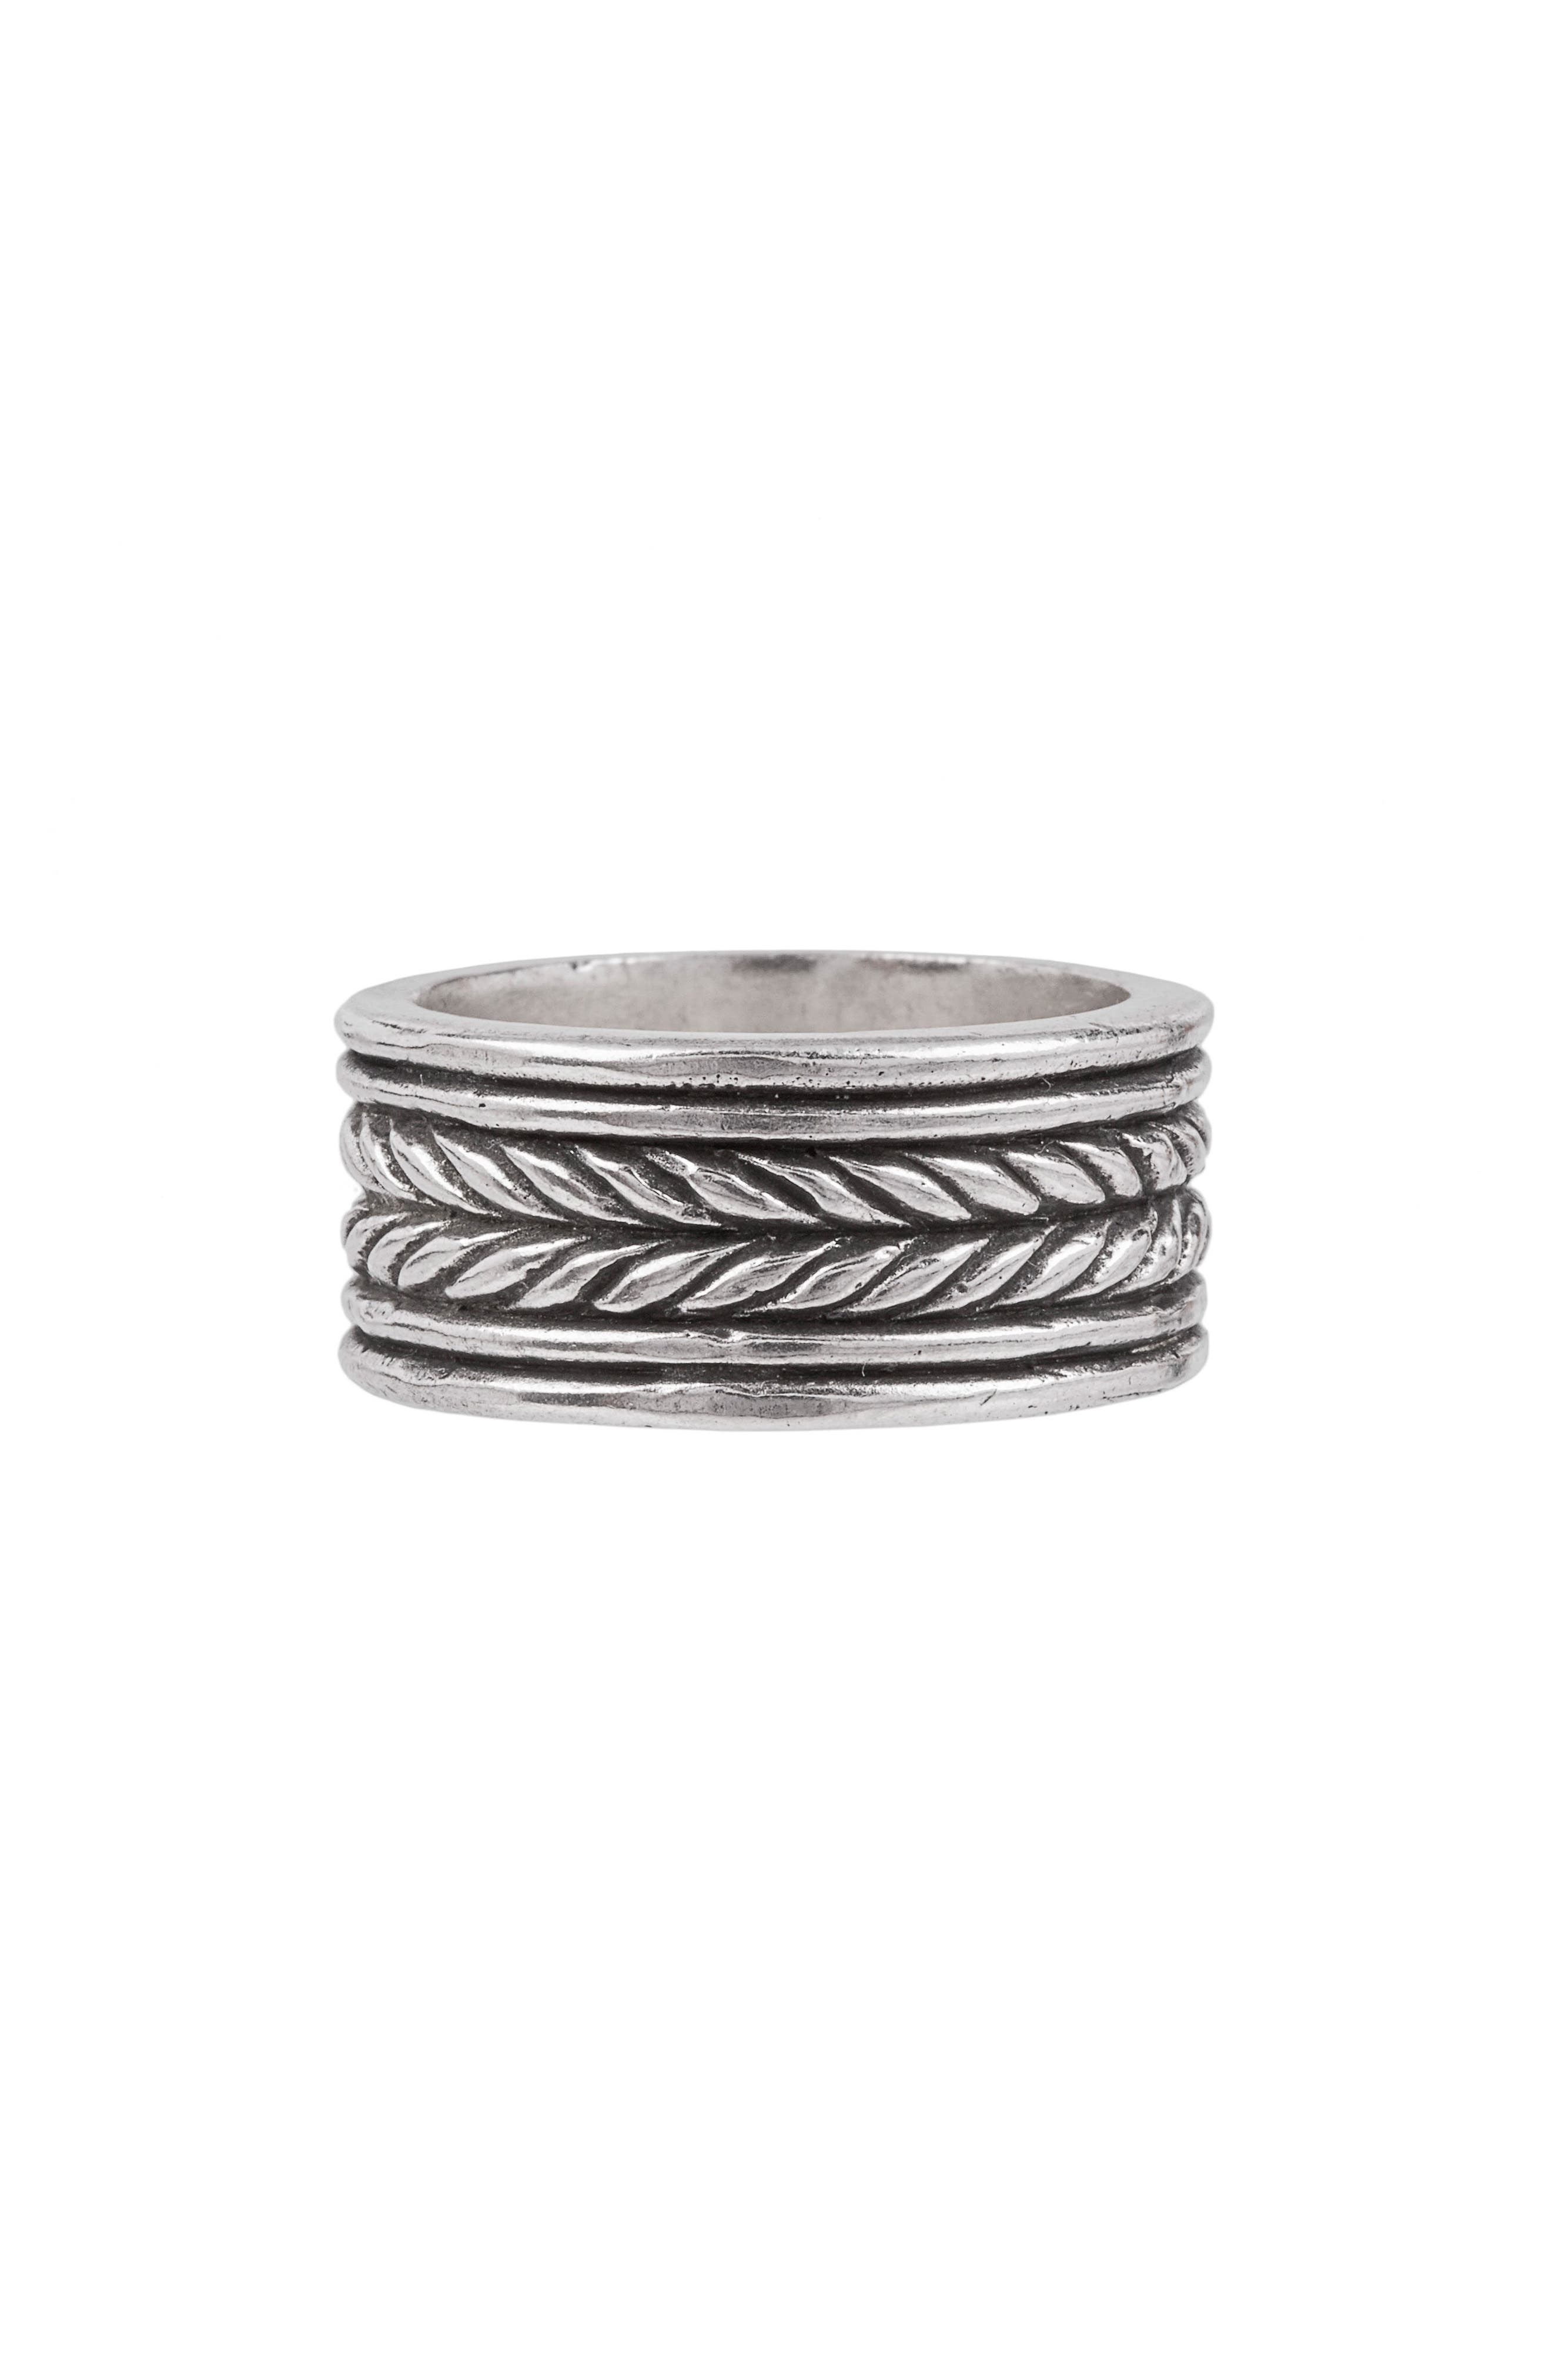 Rope Band Ring,                         Main,                         color, Silver